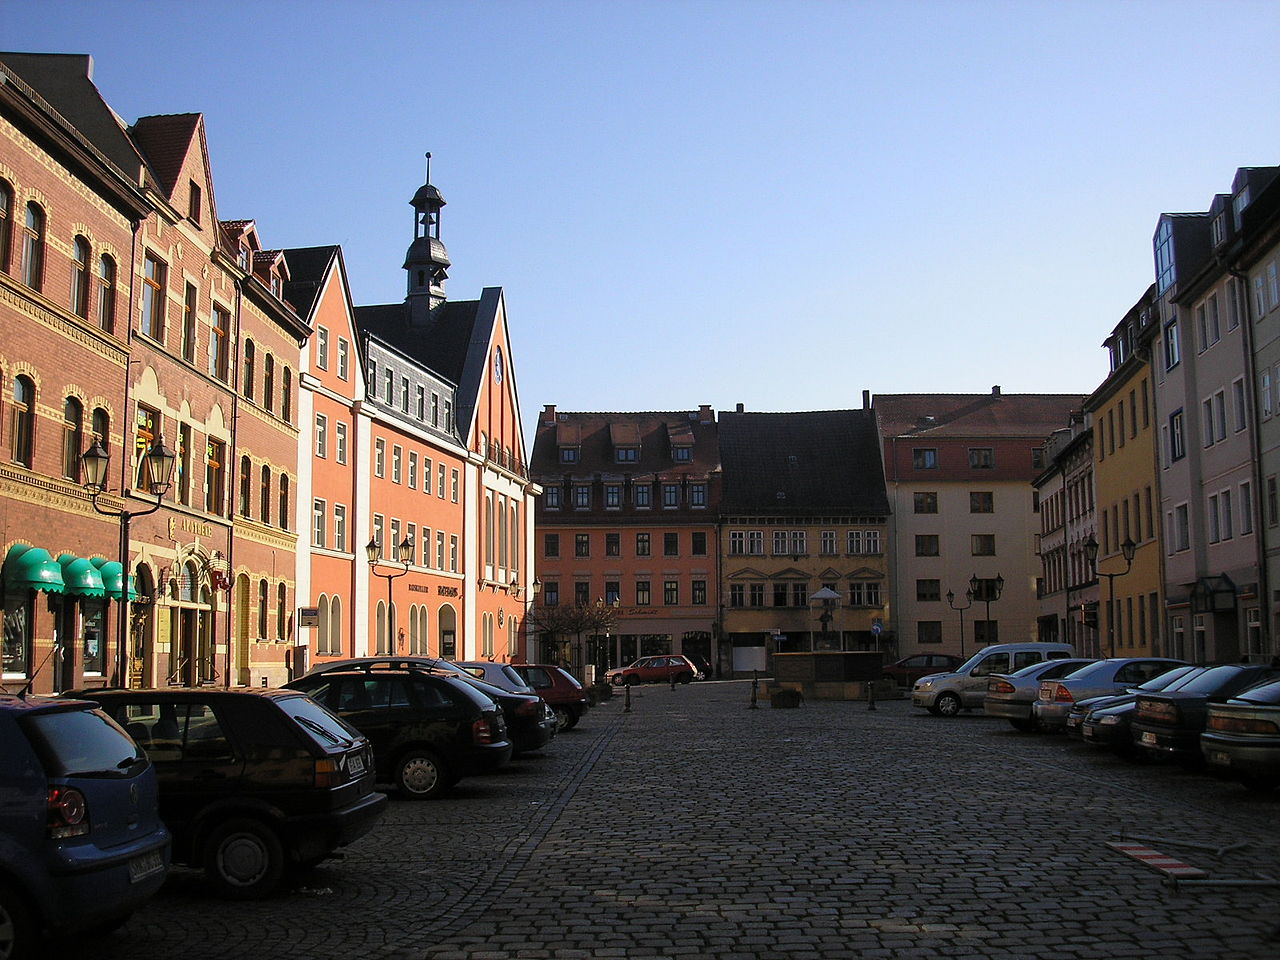 filemarktplatz kahlajpg  wikimedia commons - filemarktplatz kahlajpg